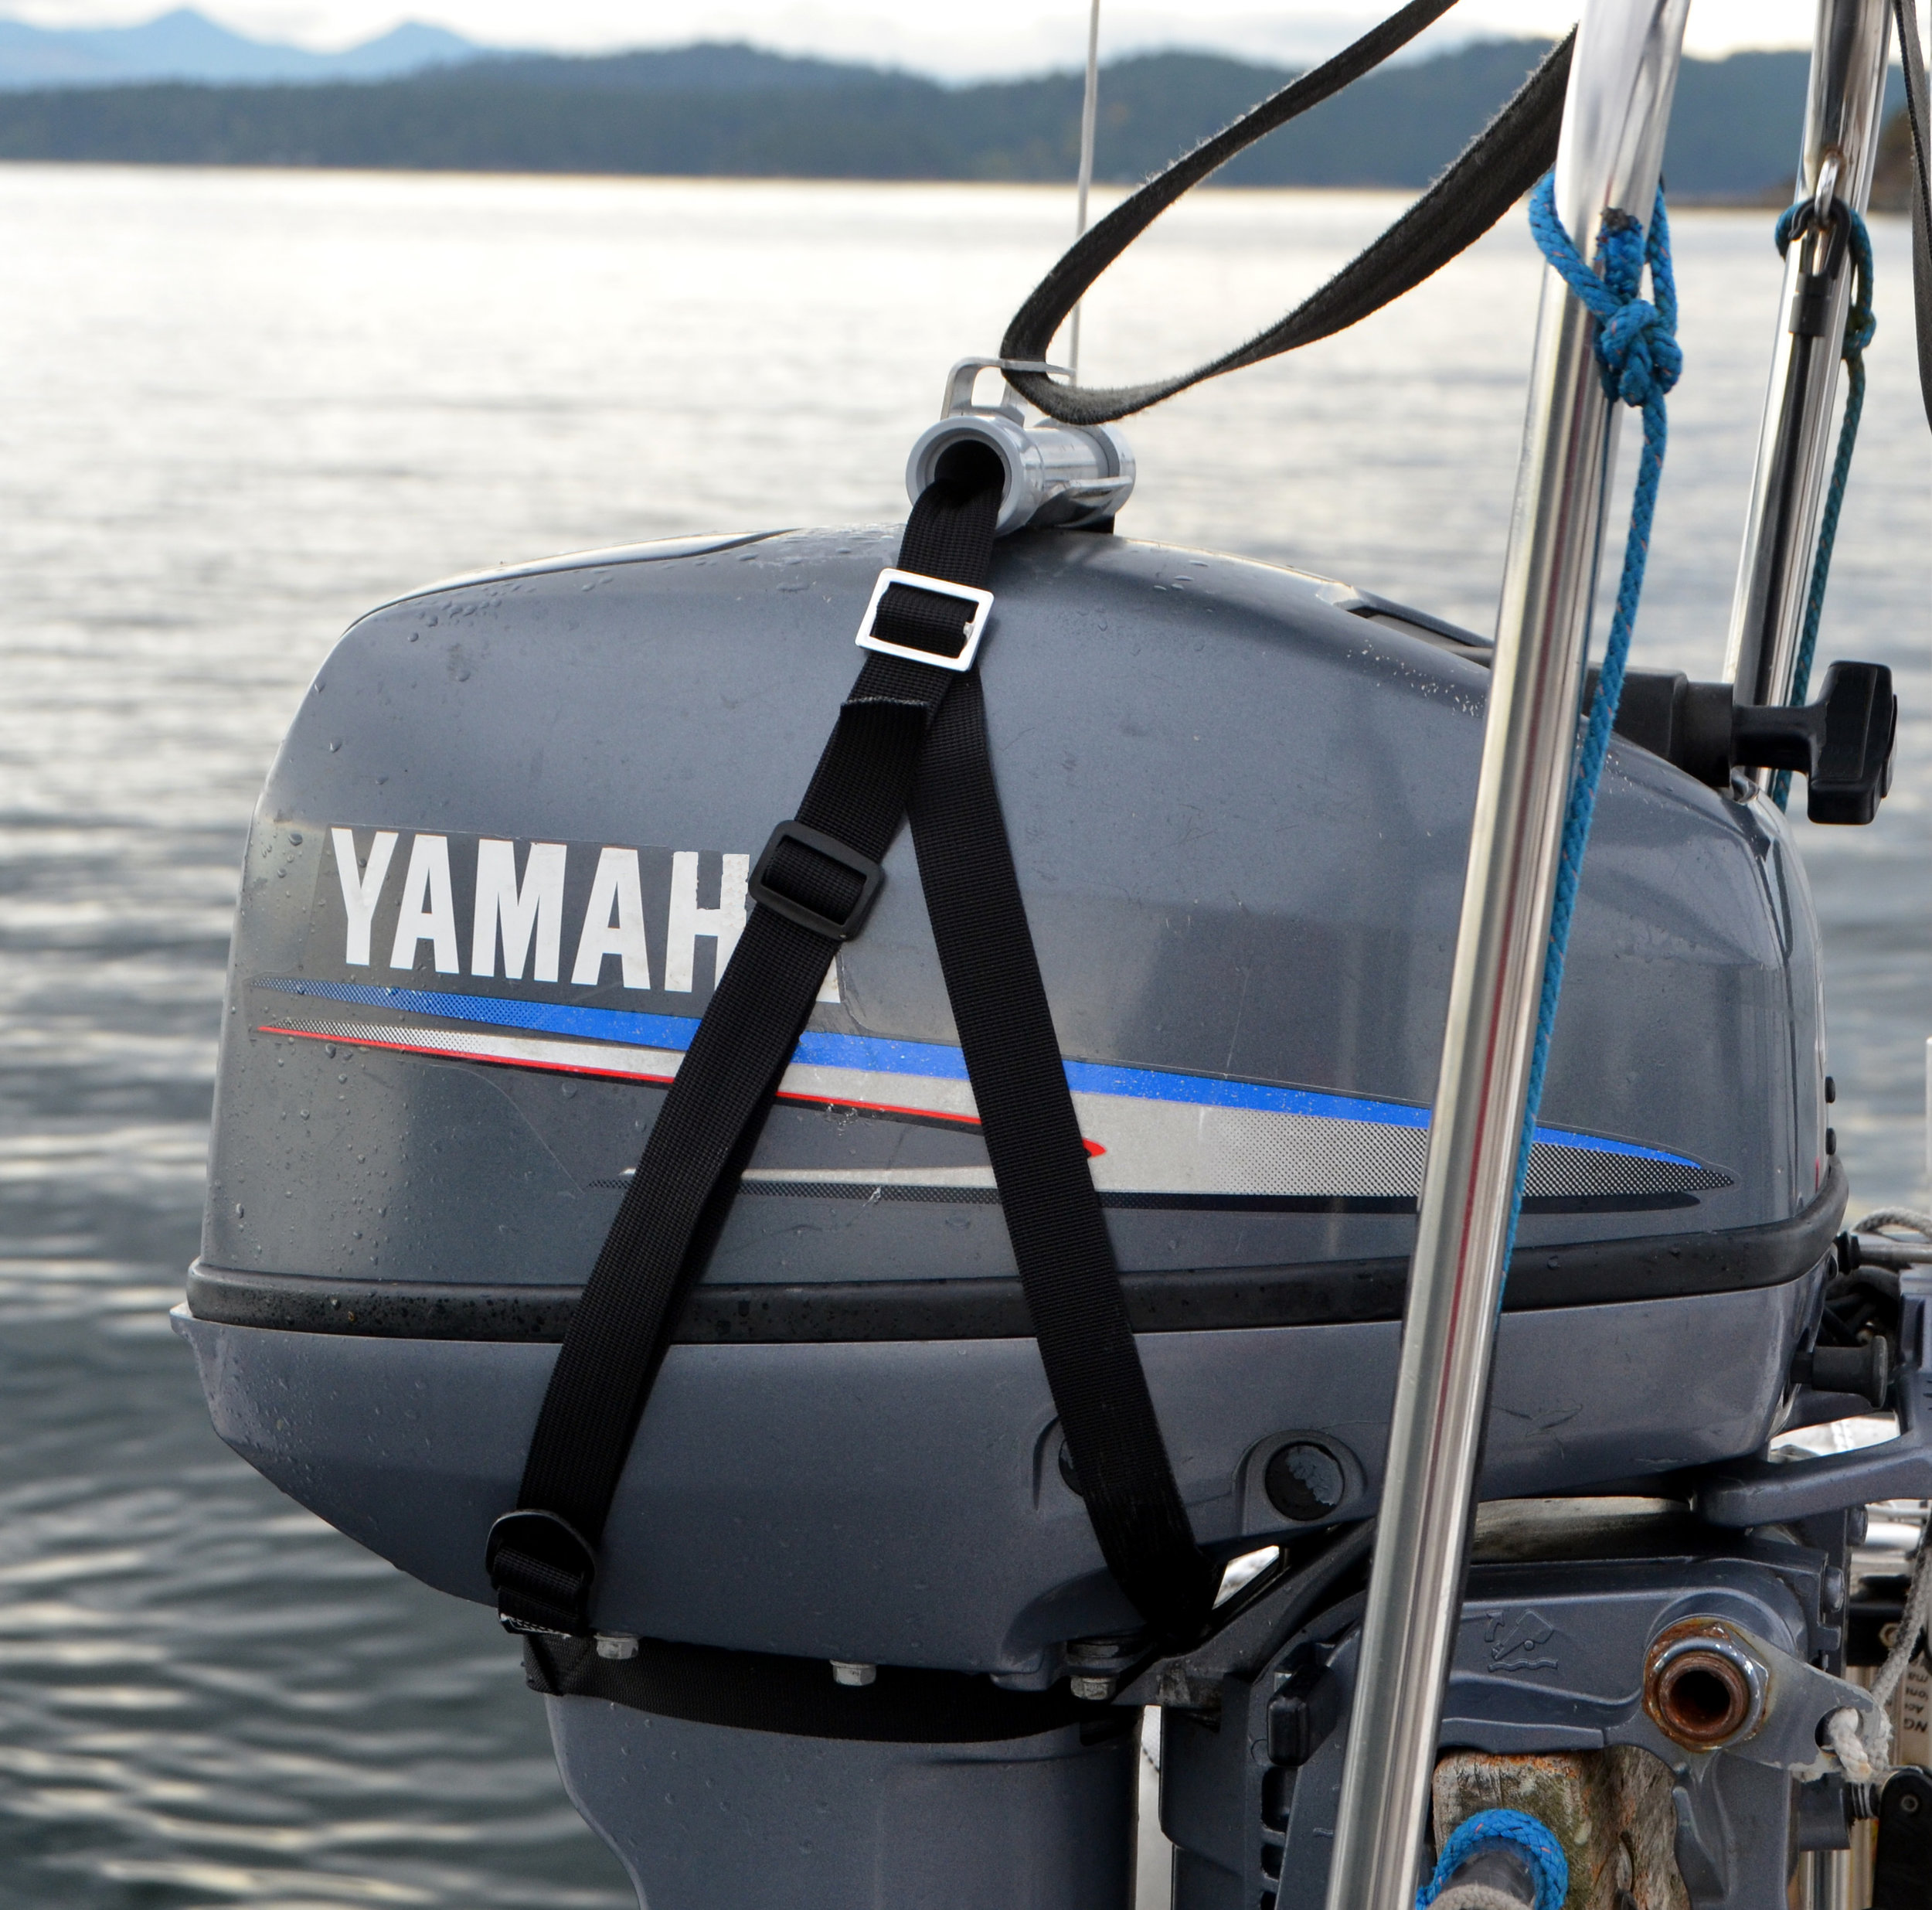 Sure-Grip Outboard Motor Harness